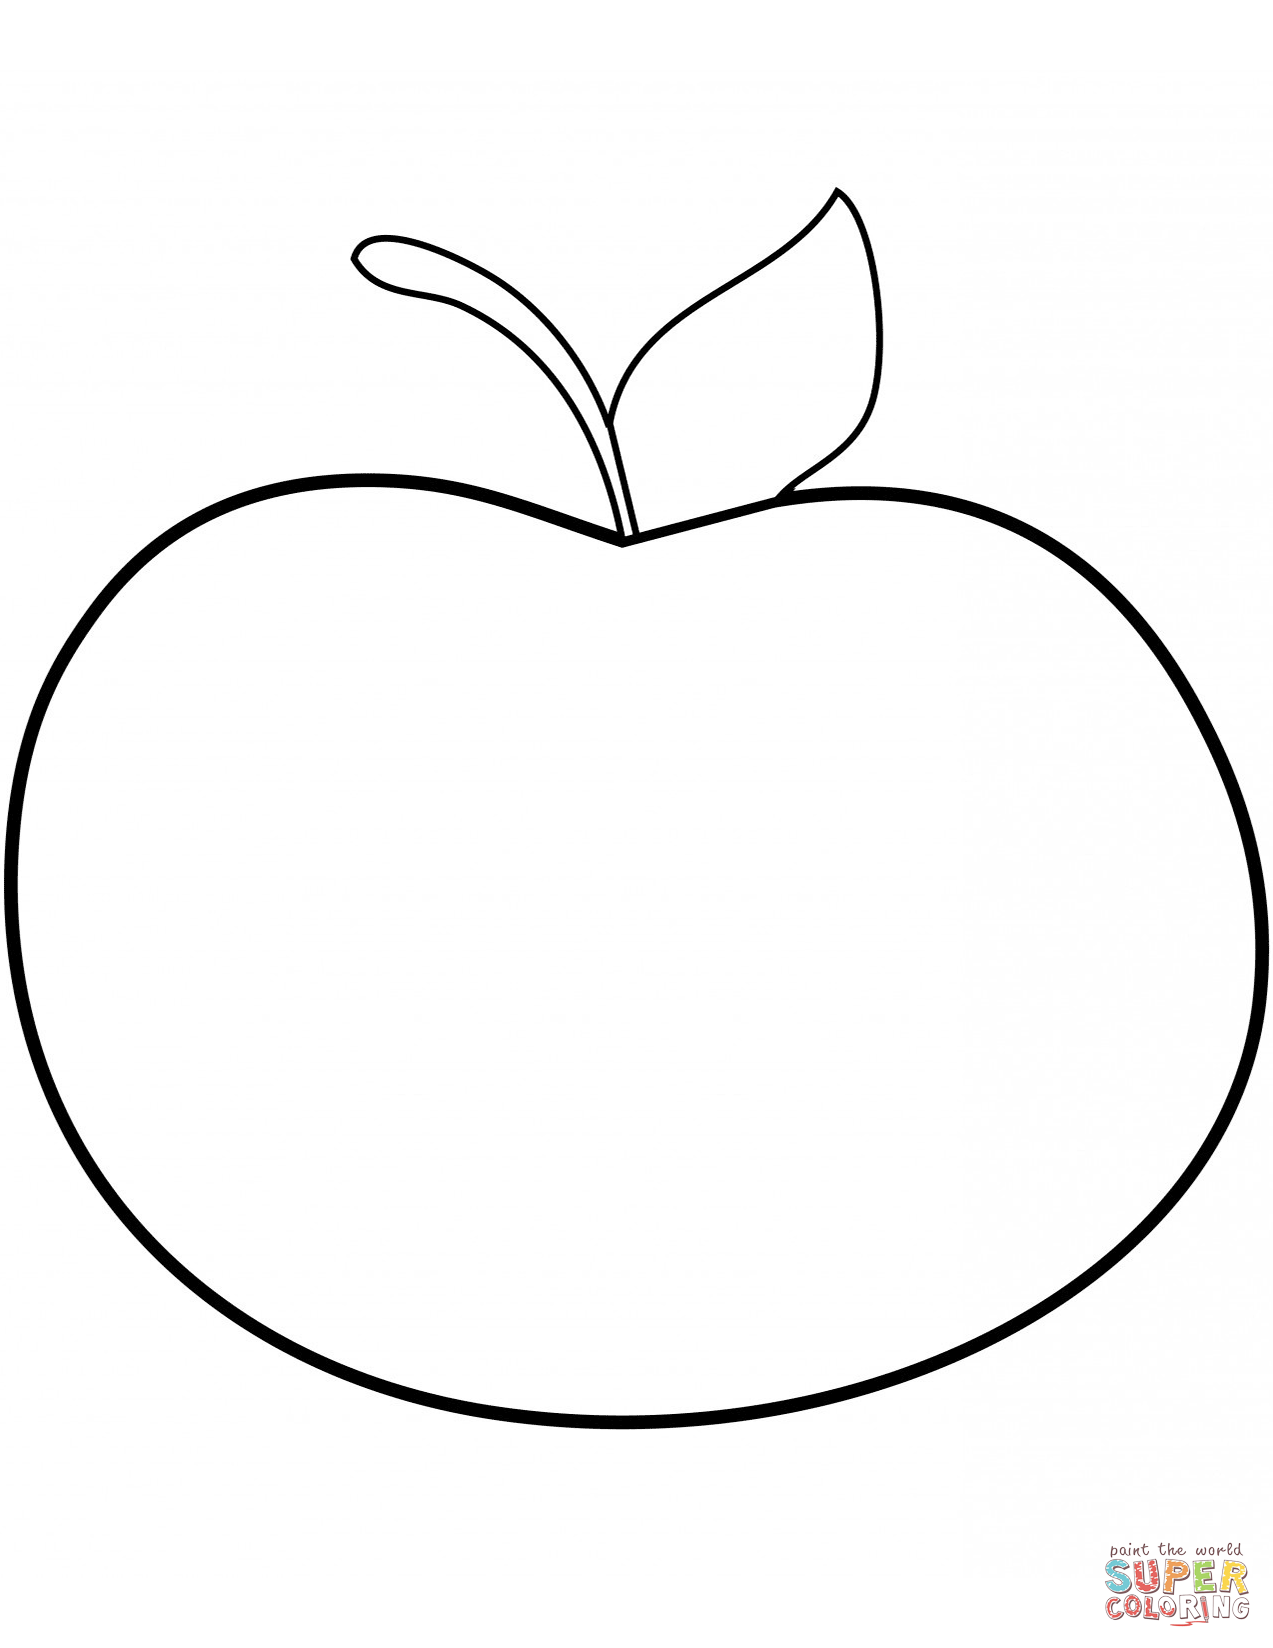 Free Coloring Pages Of An Apple : Apples to color clipart best